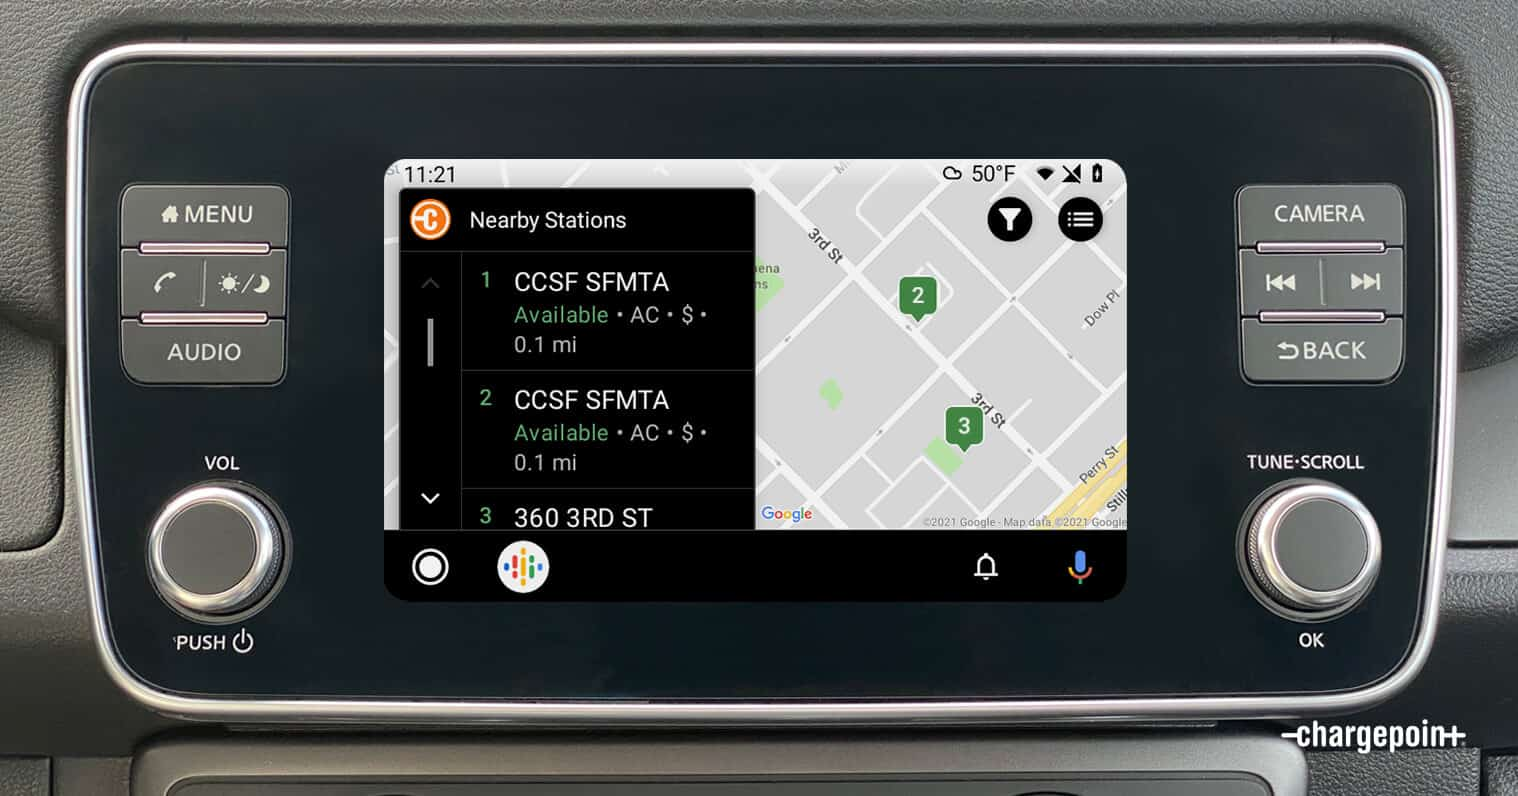 ChargePoint EV Charging Network Adds Support for Android Auto